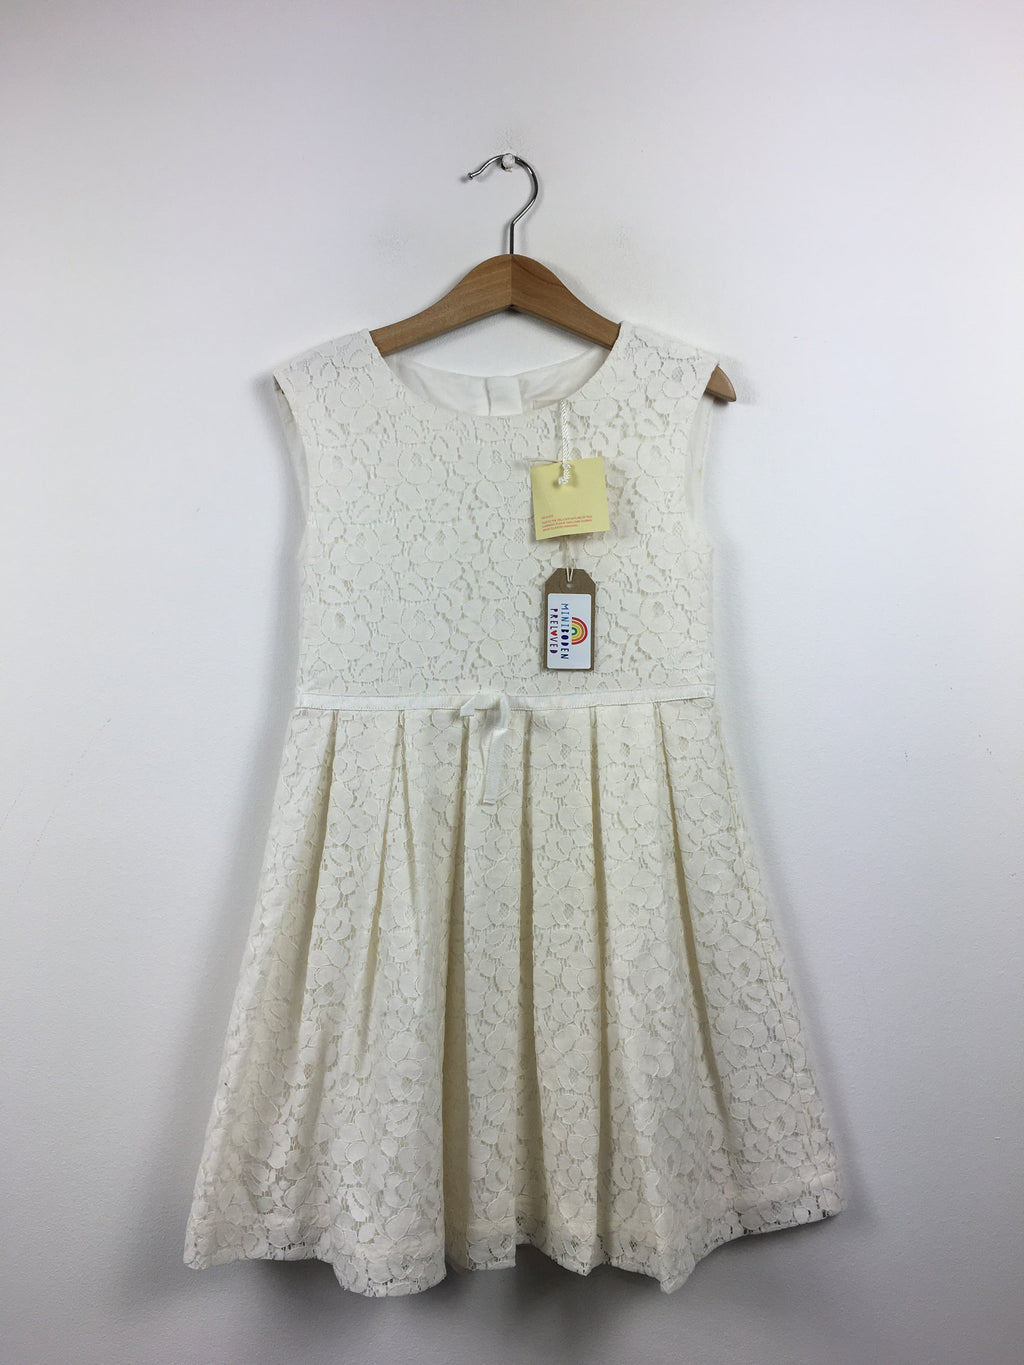 NEW Beautiful White Lace Party Dress (5-6 Years)